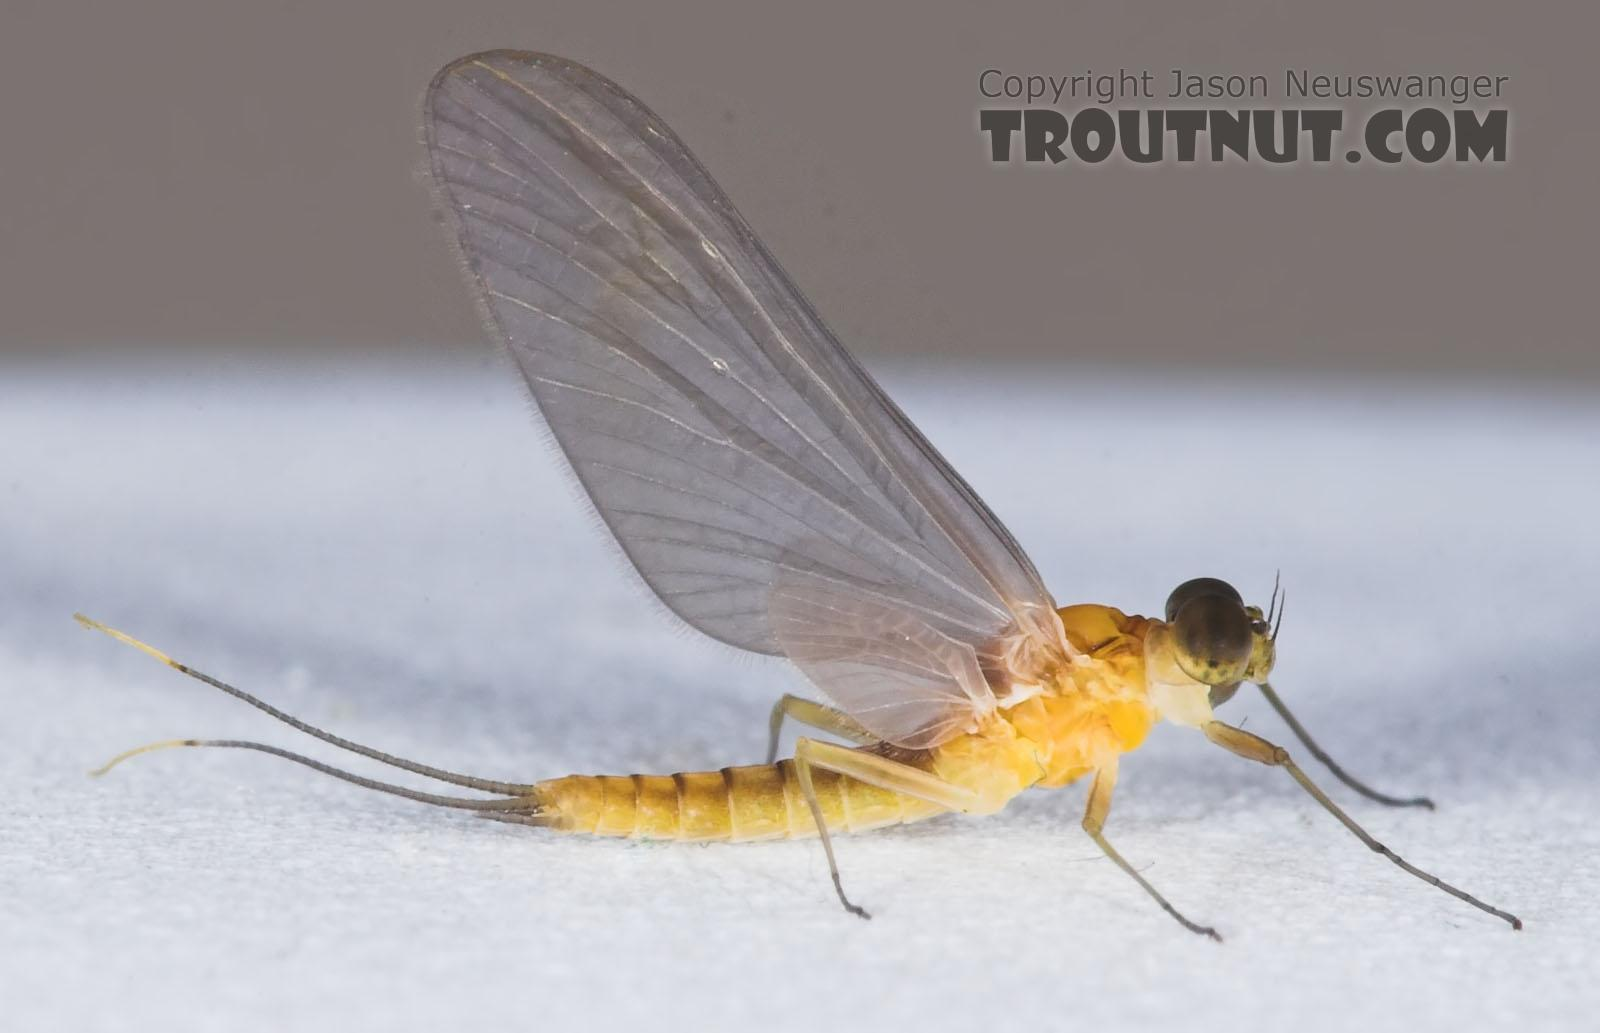 Male Nixe inconspicua Mayfly Dun from the East Branch of the Delaware River in New York